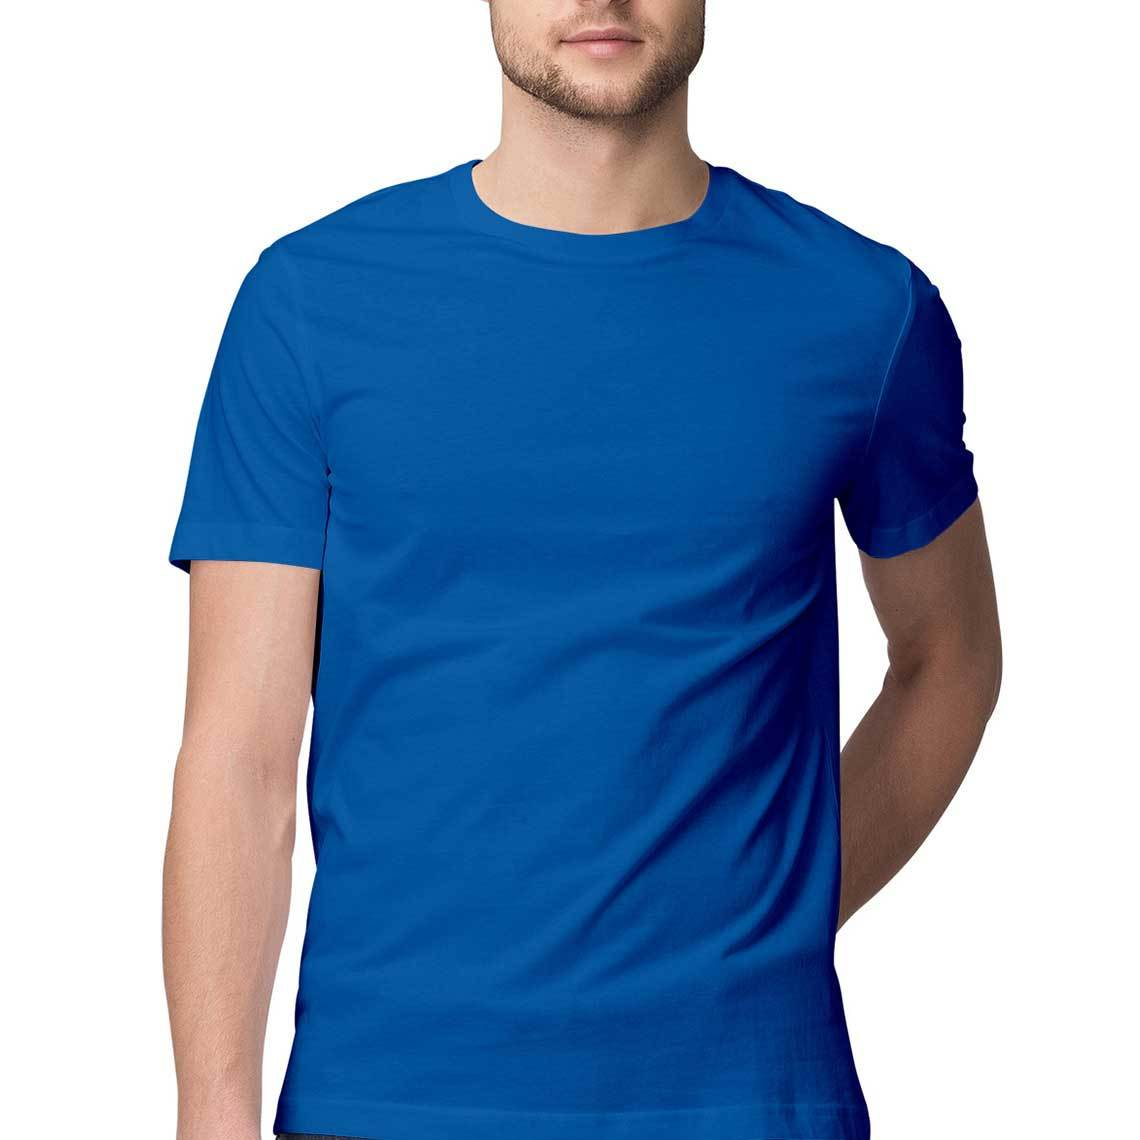 Men's Basics - Royal Blue Half Sleeves Round Neck T-shirt